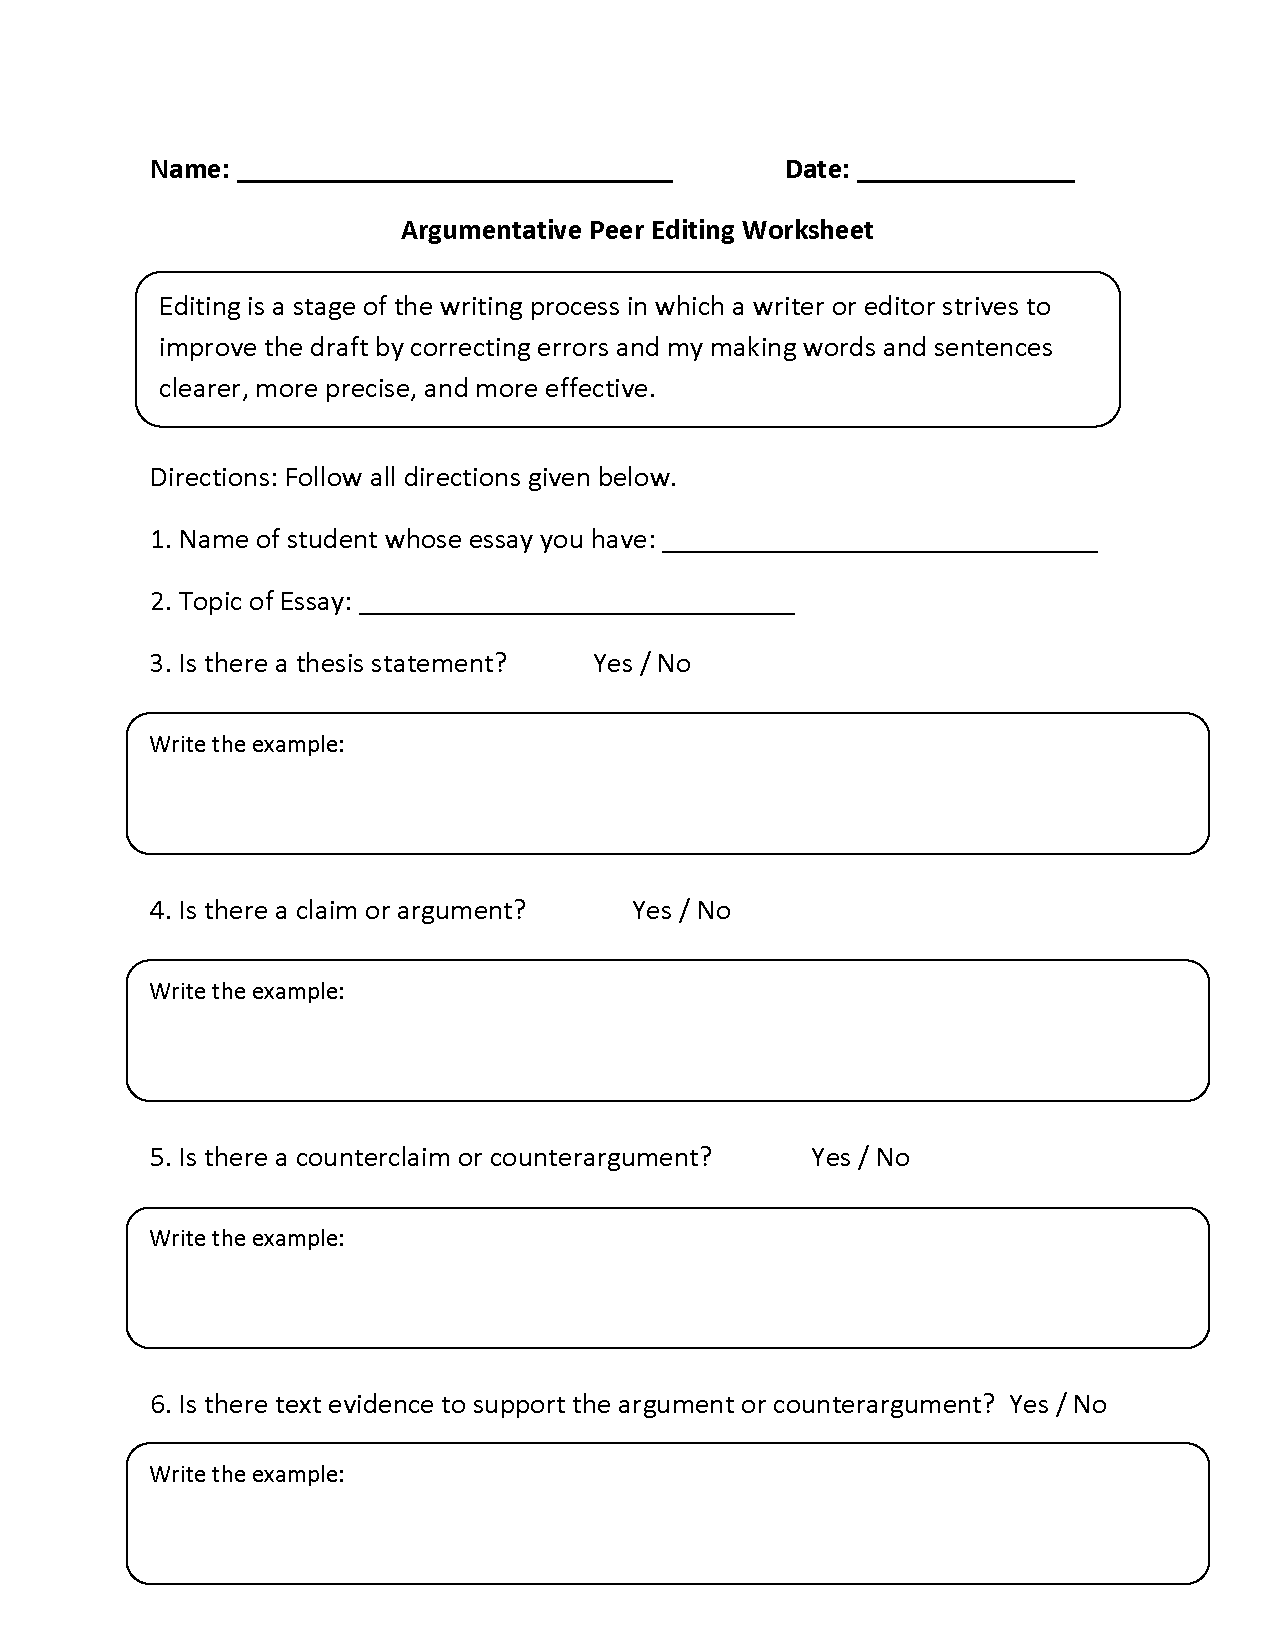 Worksheets Third Grade Editing Worksheets writing worksheets editing peer worksheets